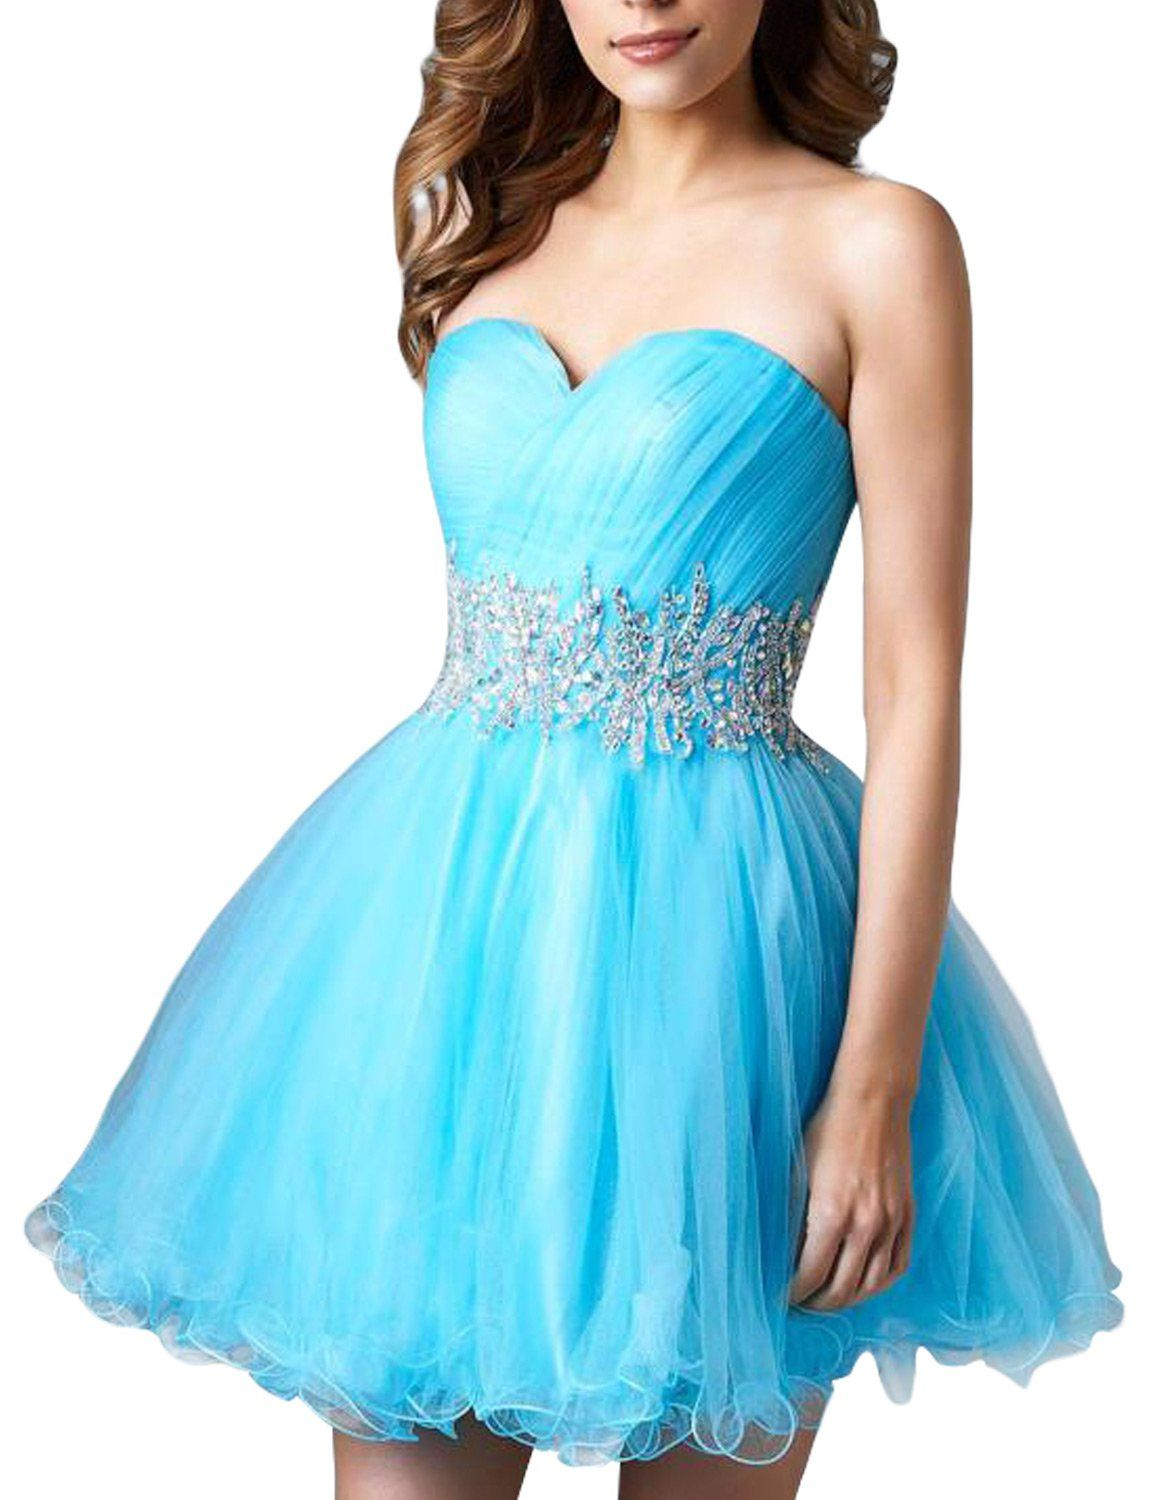 Seasonmall womenus short prom dresses two piece a line tulle